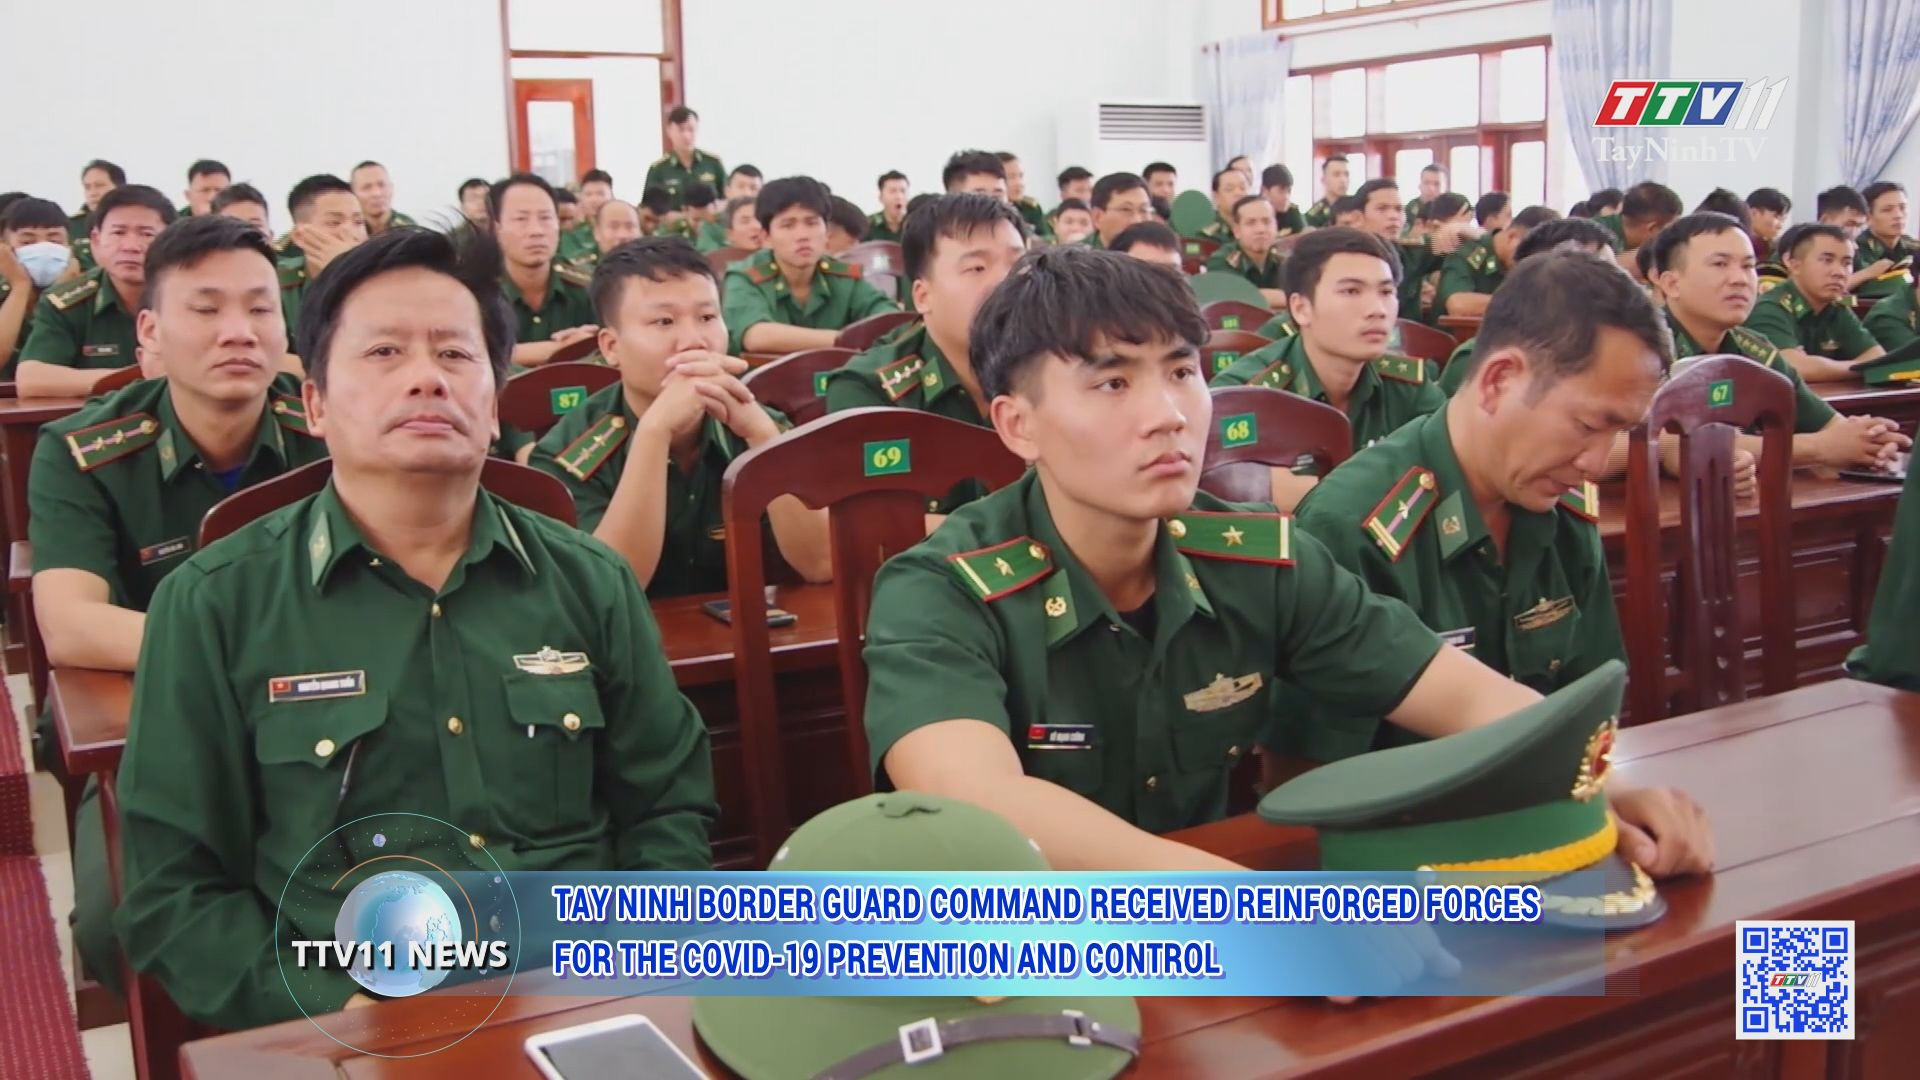 Tay Ninh Border Guard Command received reinforced forces for the COVID-19 prevention and control | TTVNEWS | TayNinhTV Today